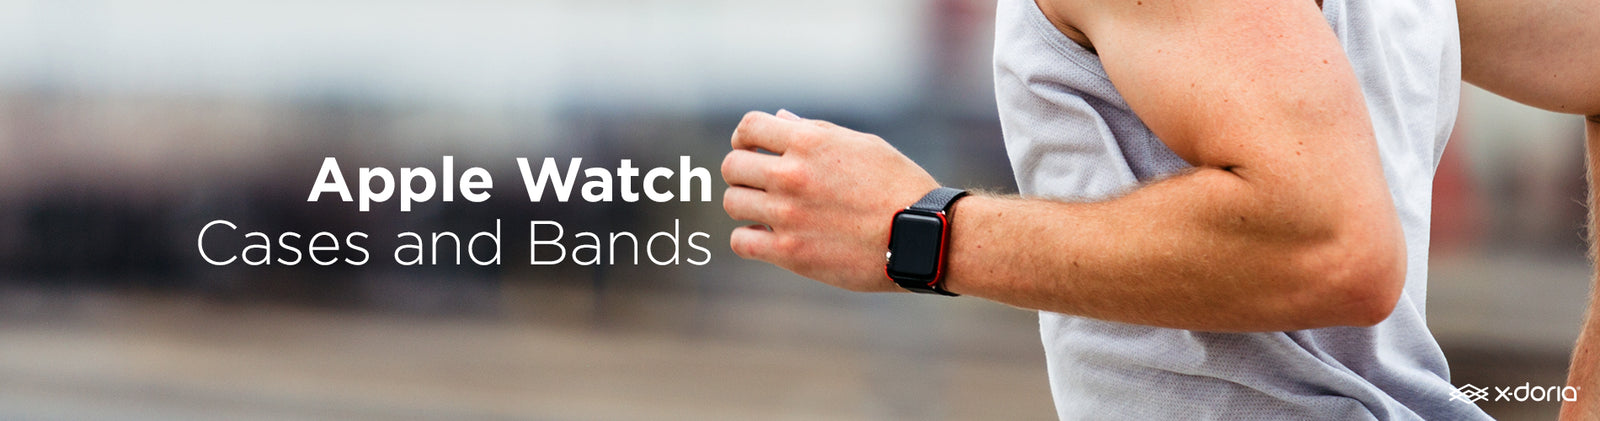 Apple Watch Cases and Bands